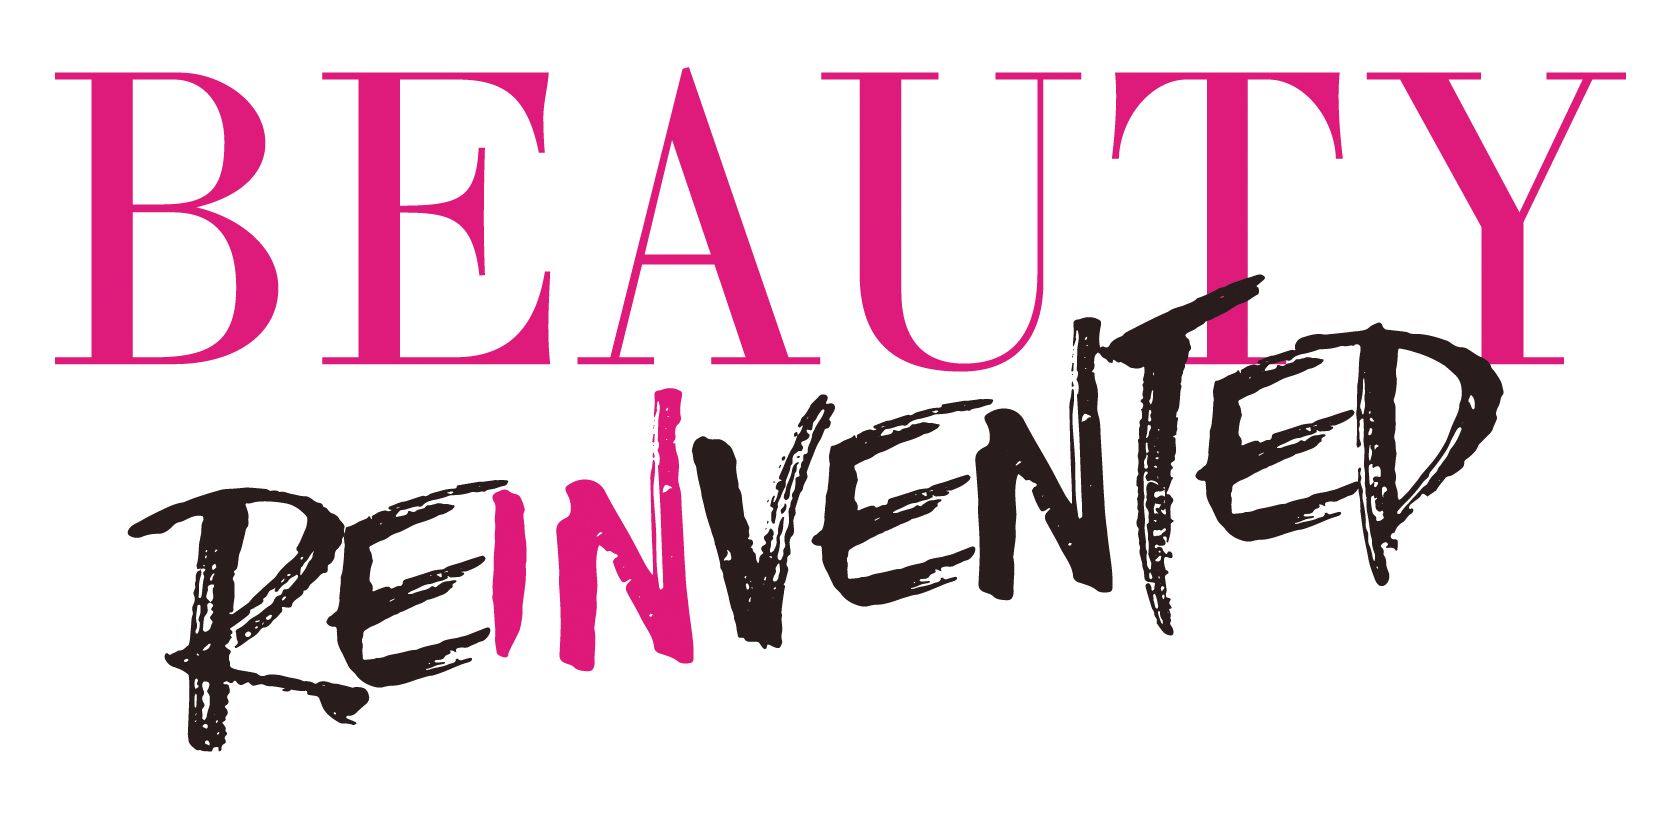 Beauty Reinvented interior design and typesetting